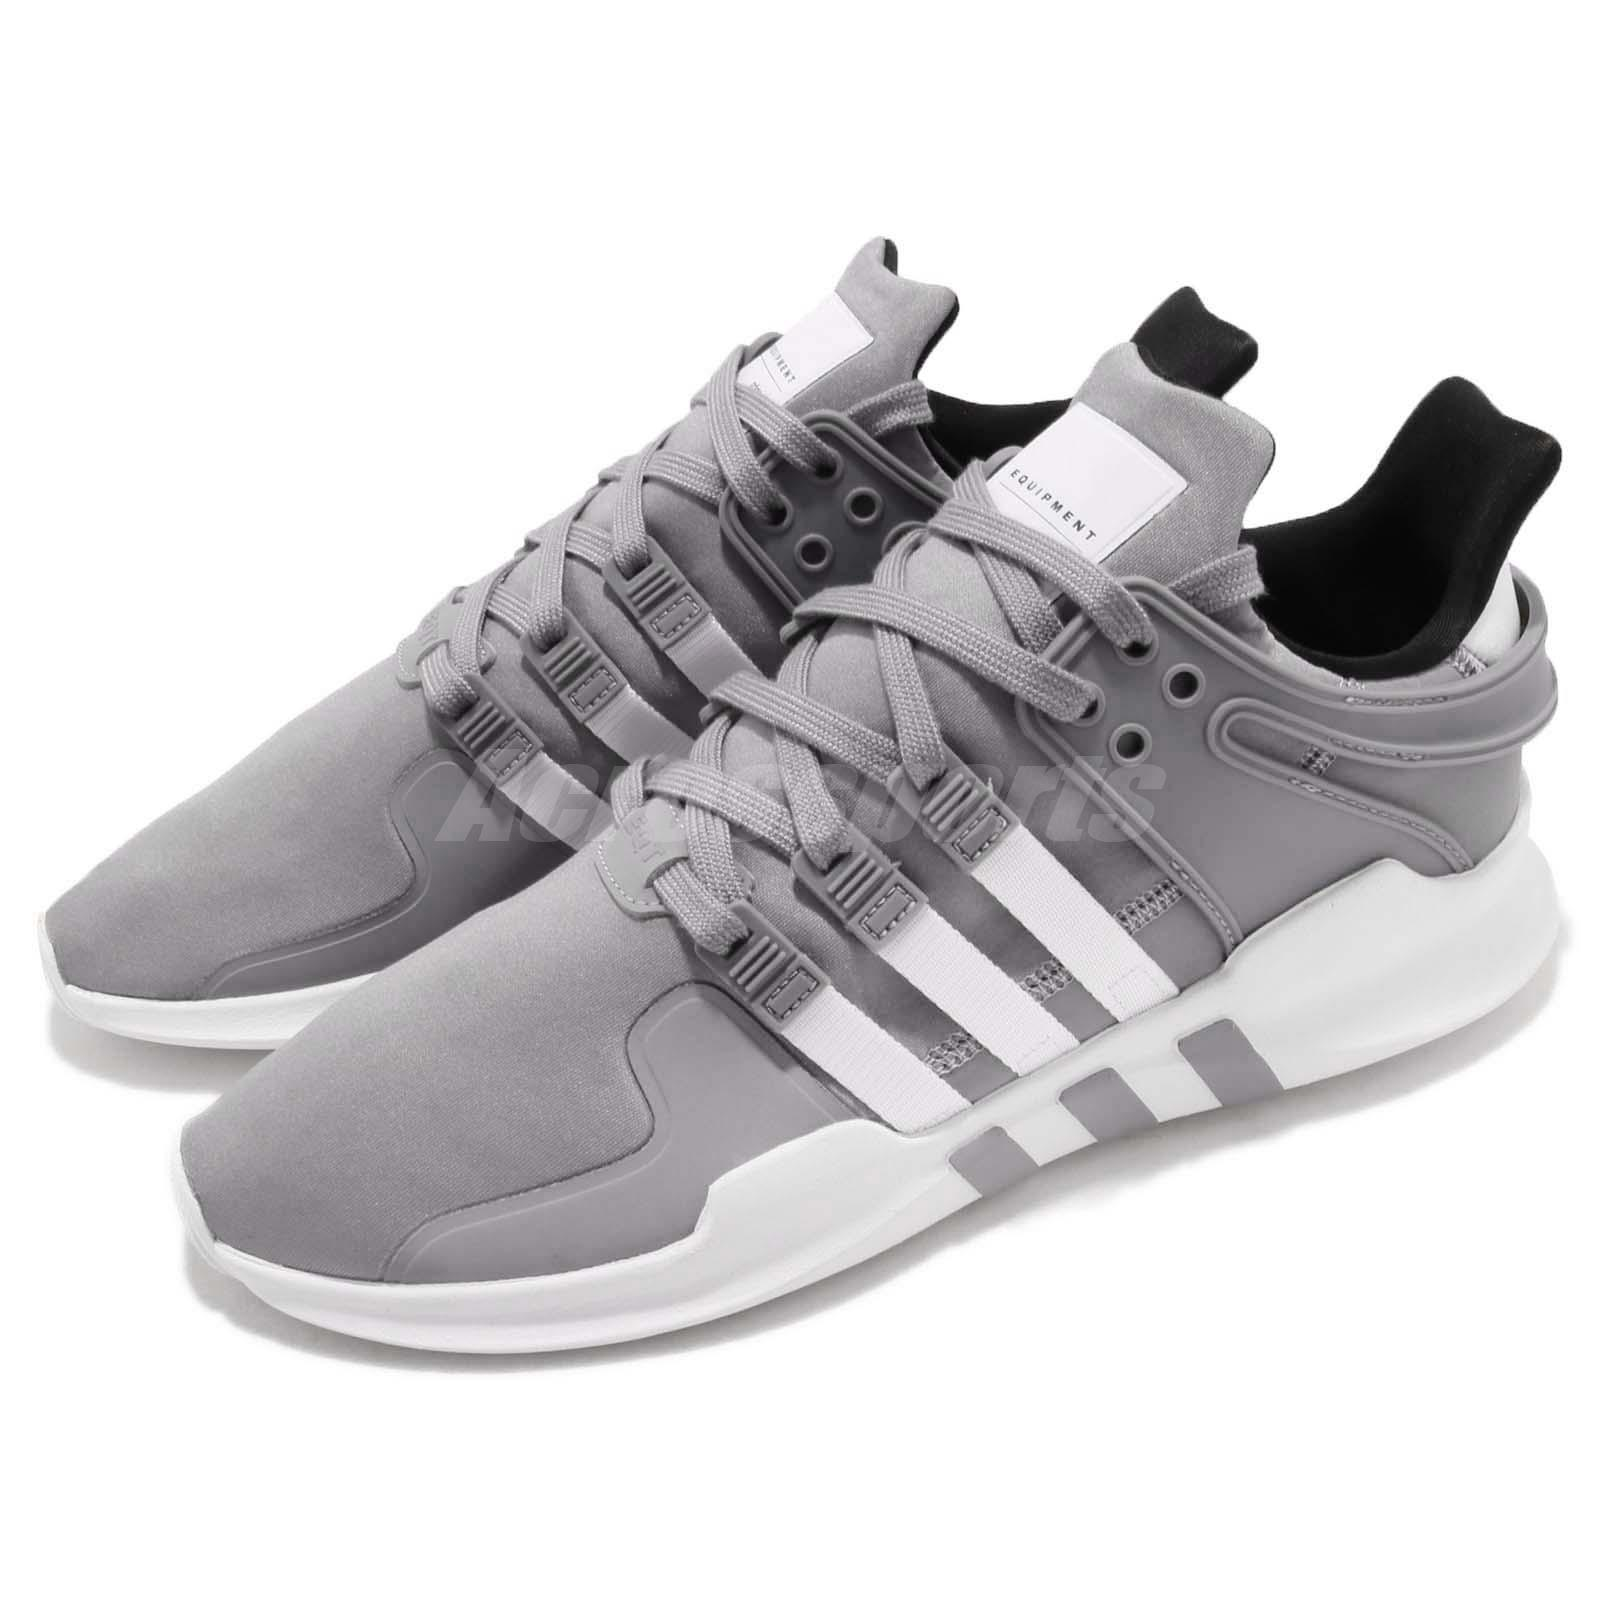 wholesale dealer 1aa4f 02ff5 Details about adidas Originals EQT Support ADV Grey White Men Running Shoes  Sneakers B37355